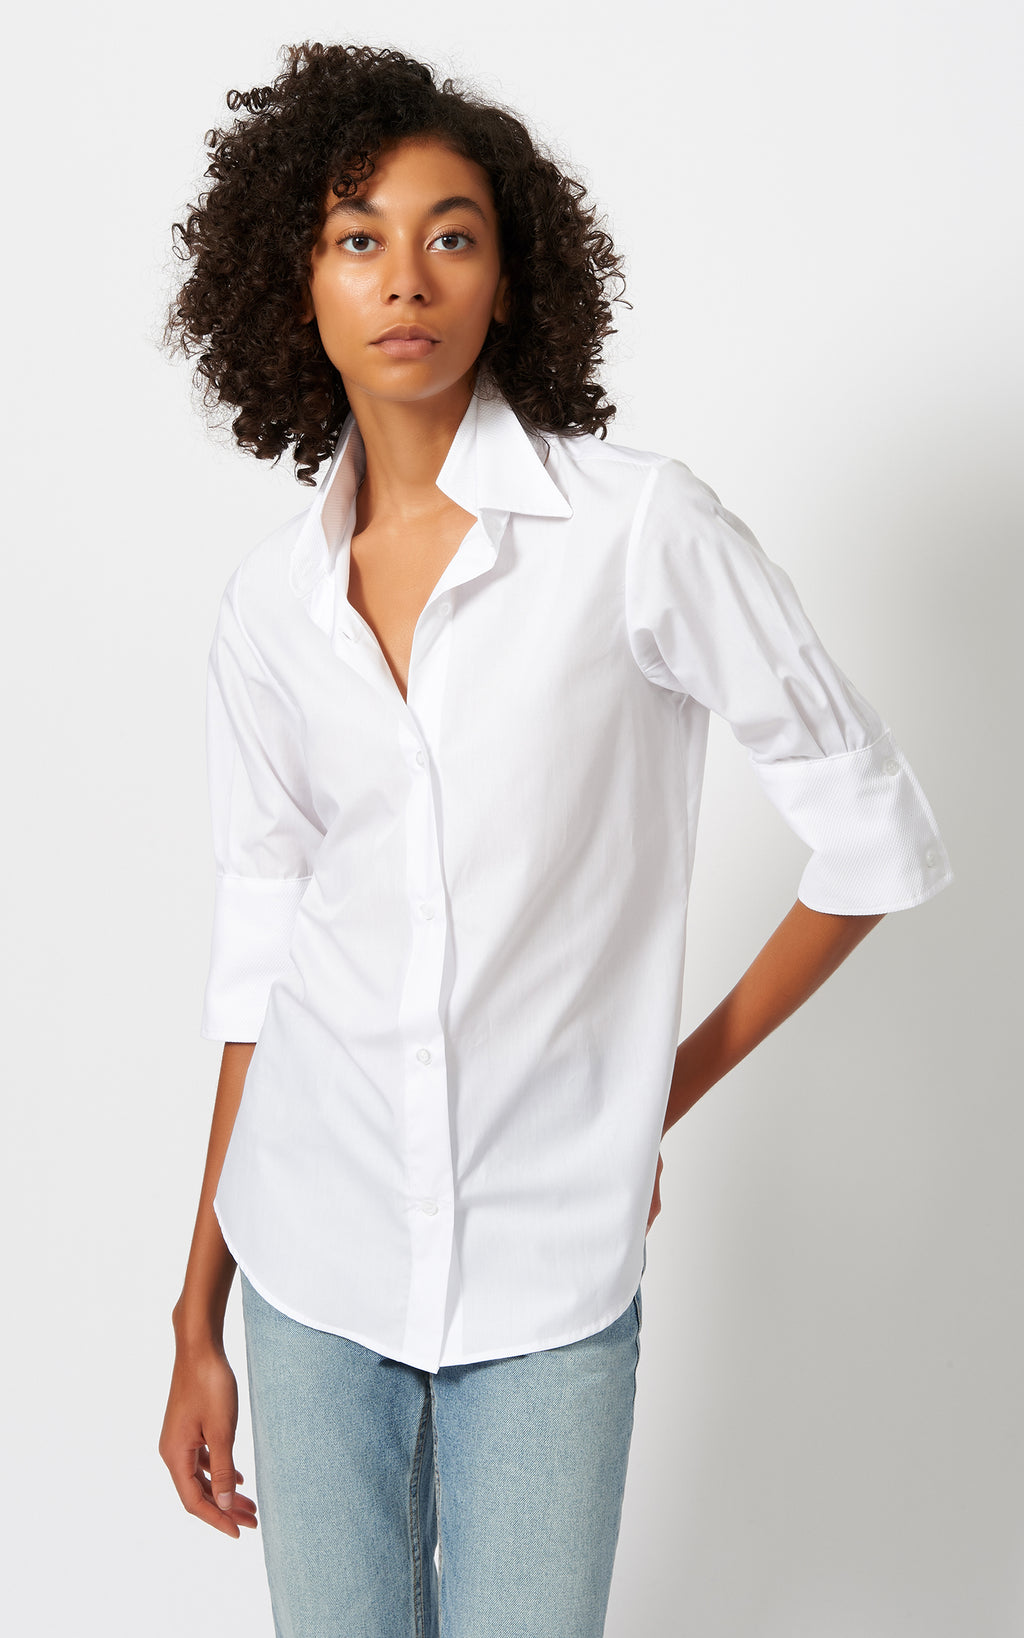 SHORT SLEEVE DOUBLE COLLAR SHIRT - WHITE WITH PIQUE